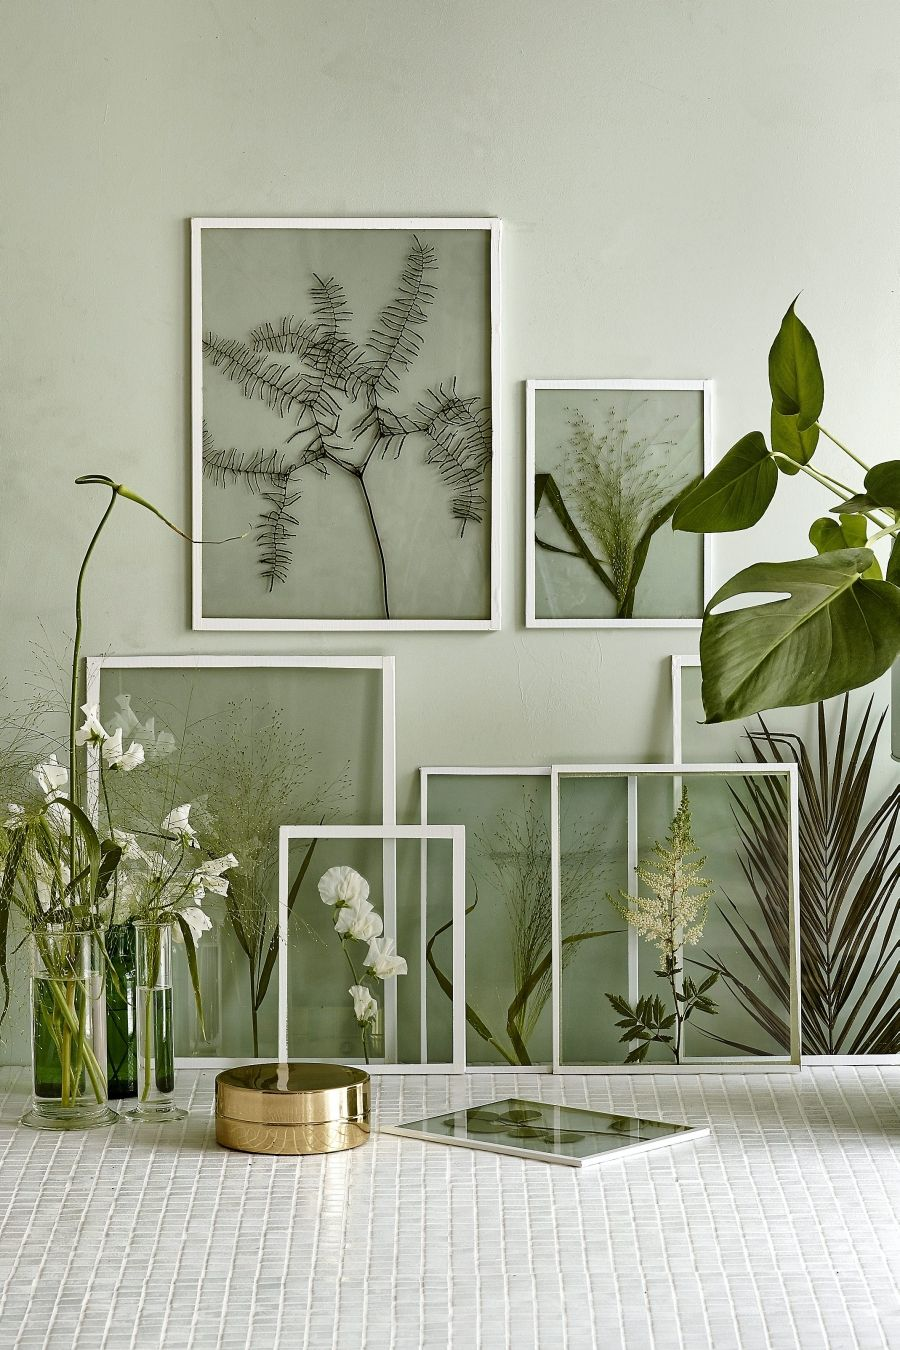 Wall Art Glass Framed : Framing dried plants and flowers in clear glass frames